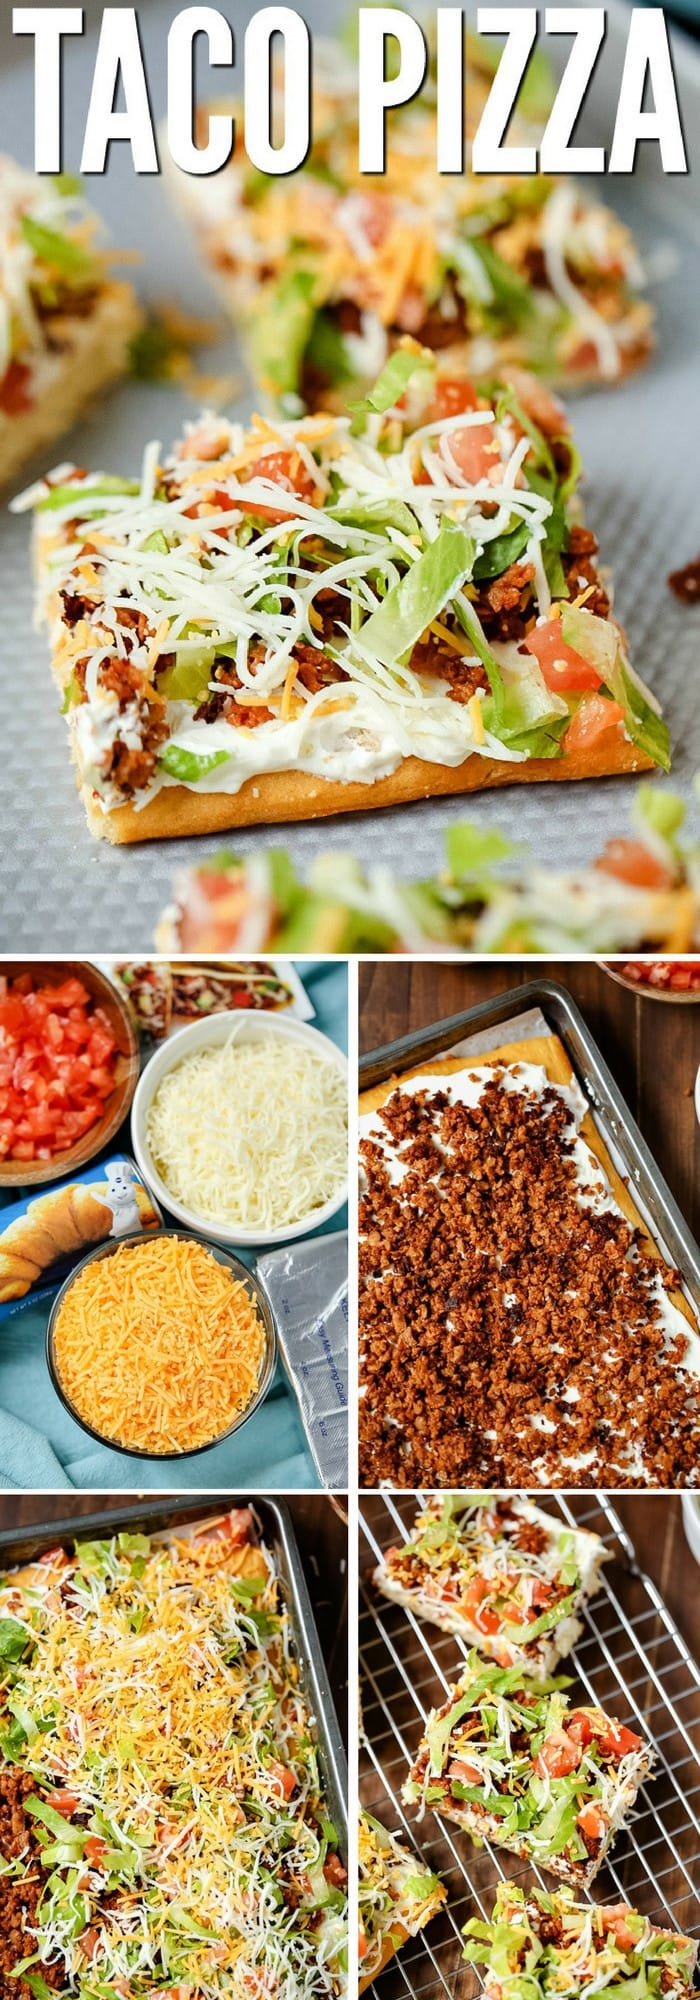 best taco pizza recipe